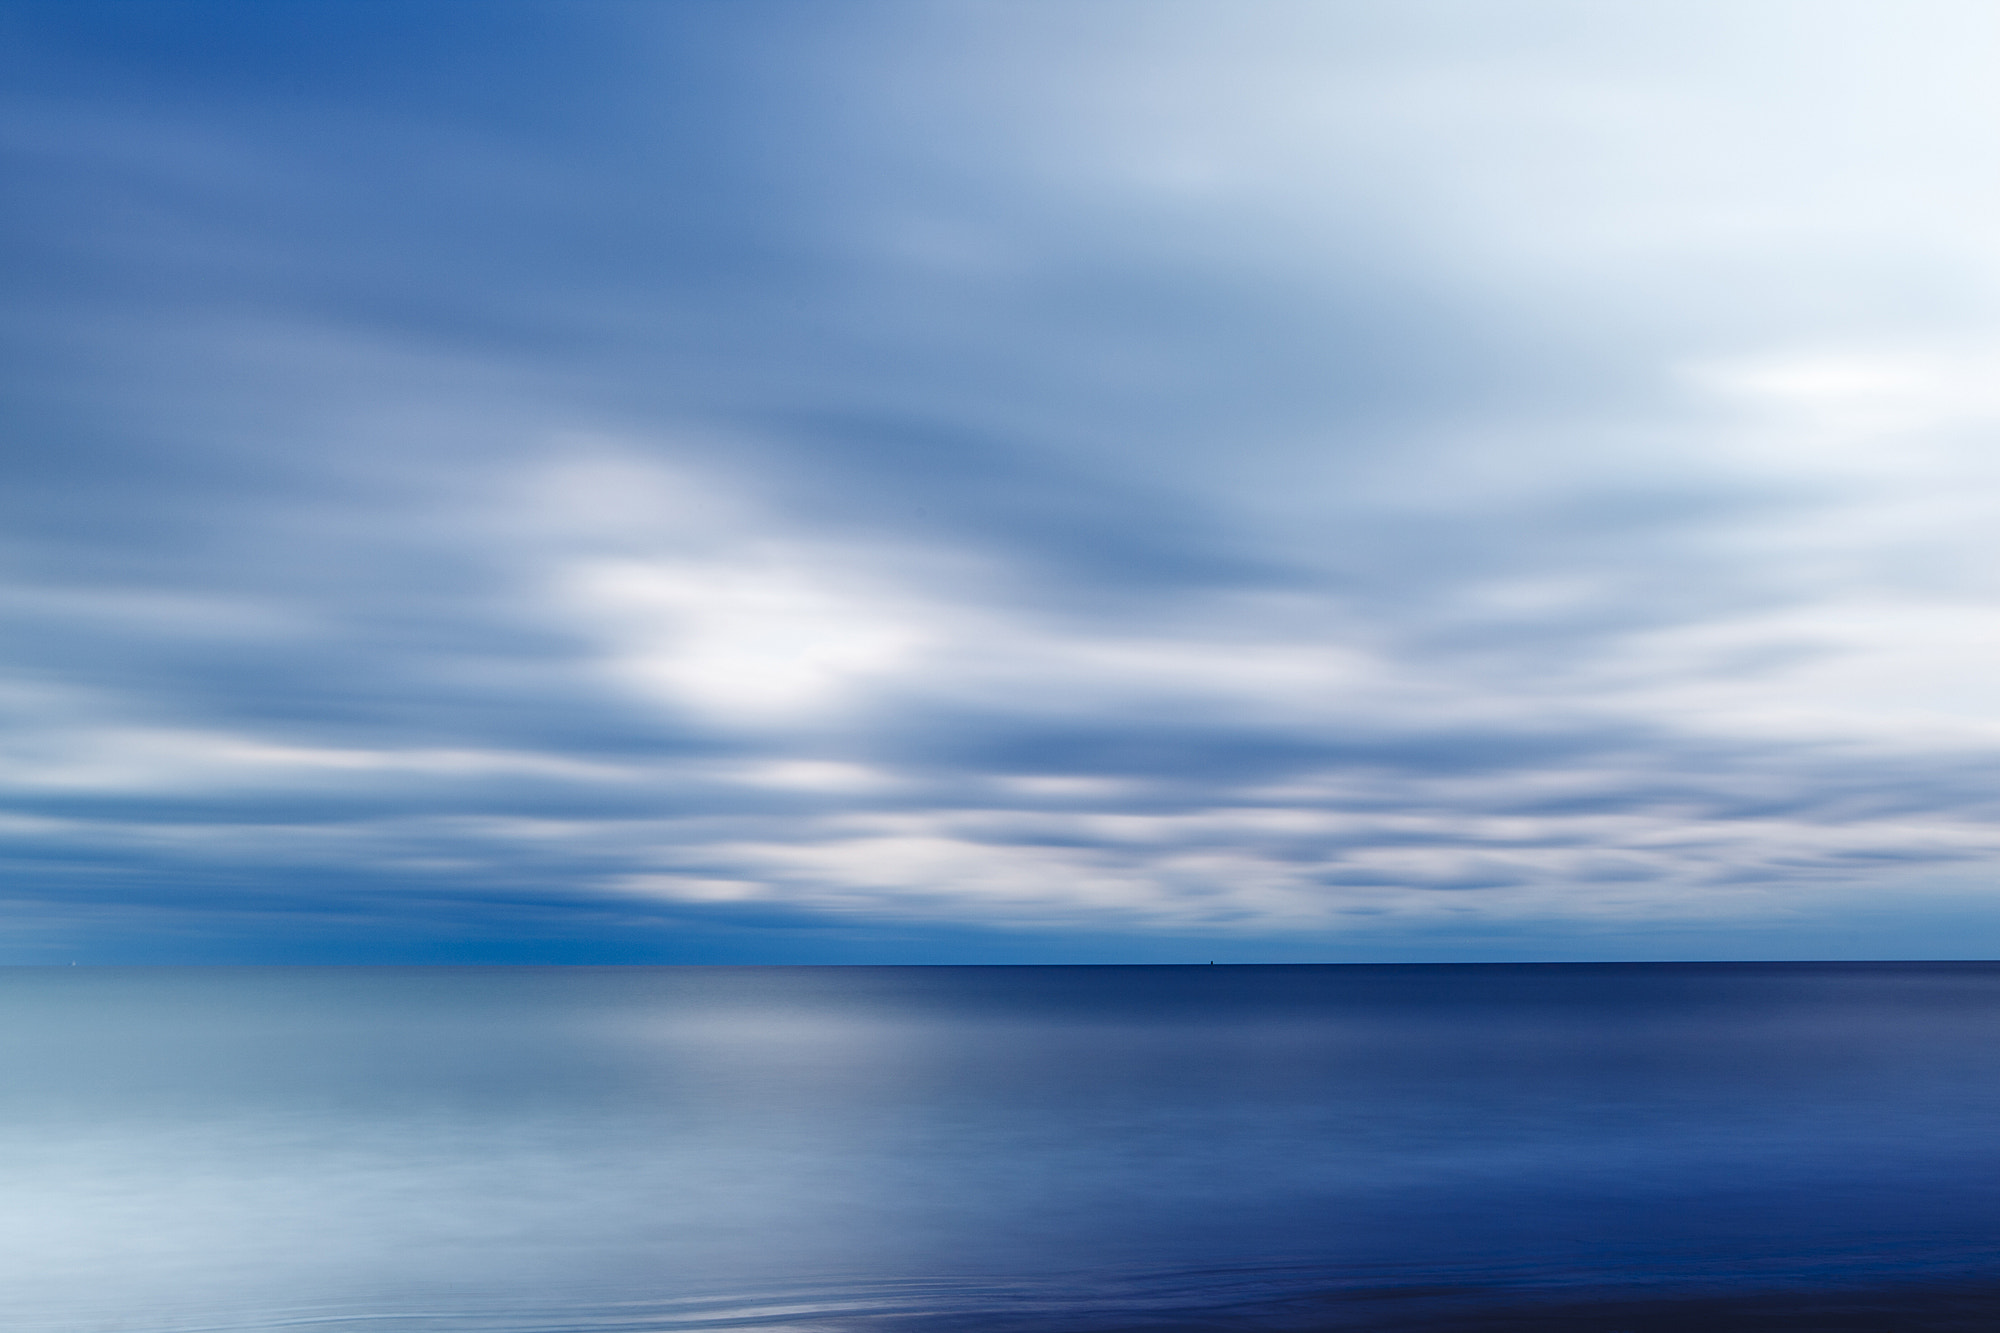 Photograph Blue - Clouds over the Atlantic Ocean by Jerry Monkman on 500px